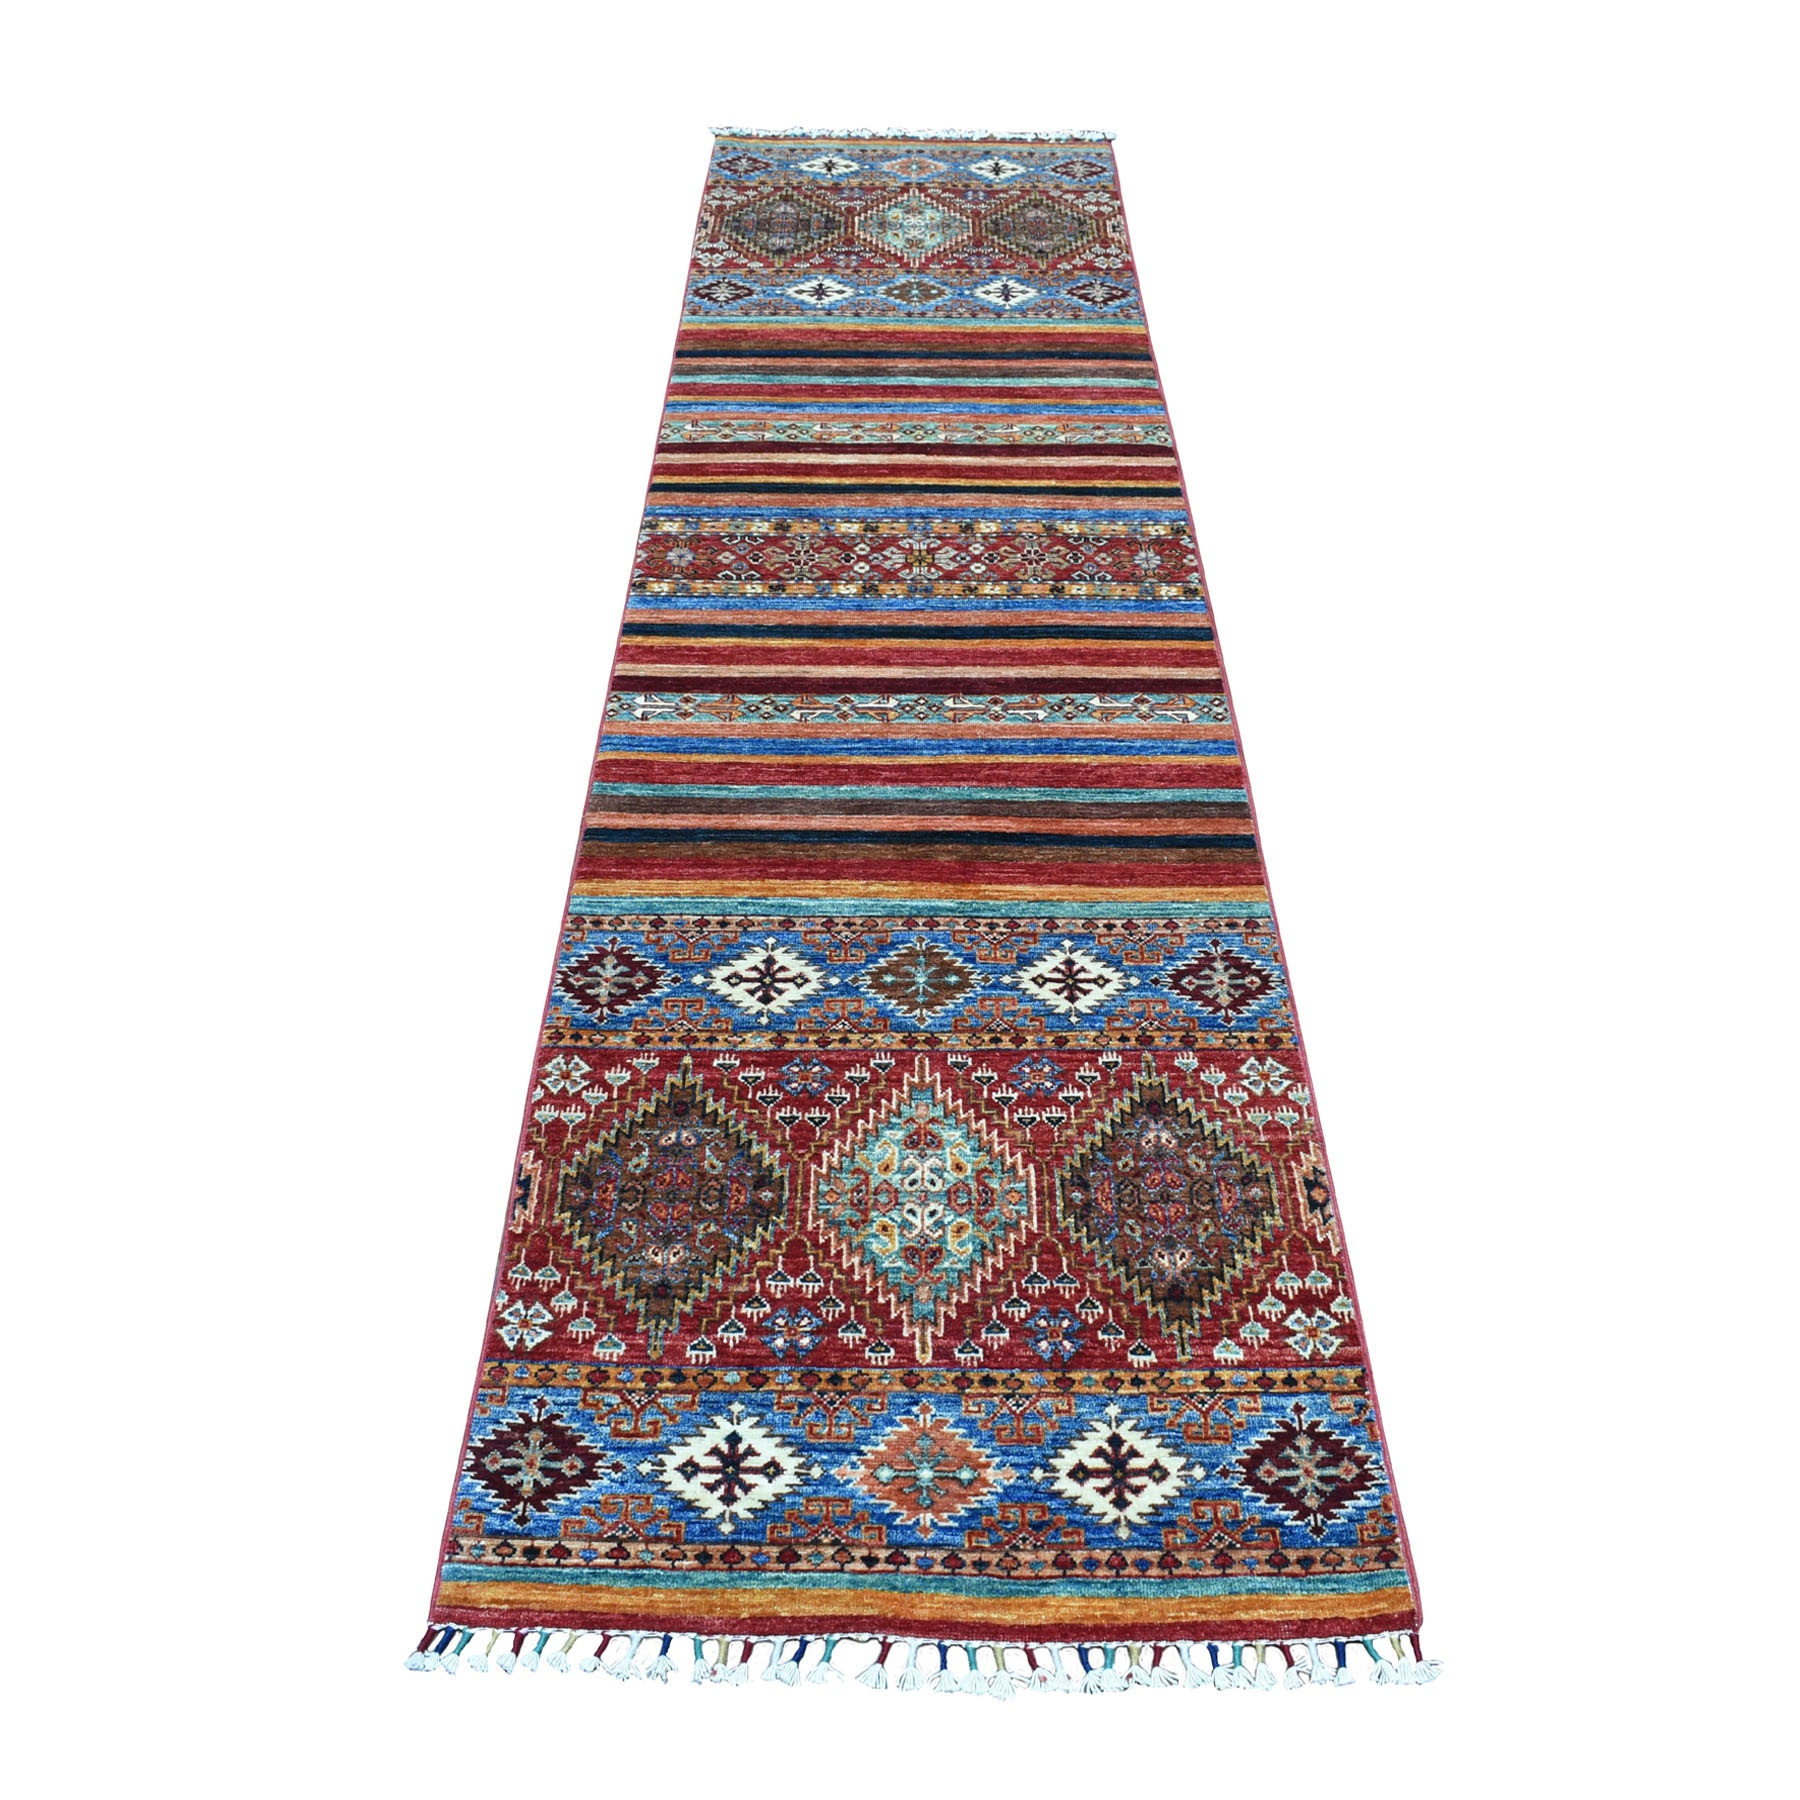 "2'6""x9'8"" Super Kazak Colorful Khorjin Design Pure Wool Hand Knotted Runner Oriental Rug 52035"